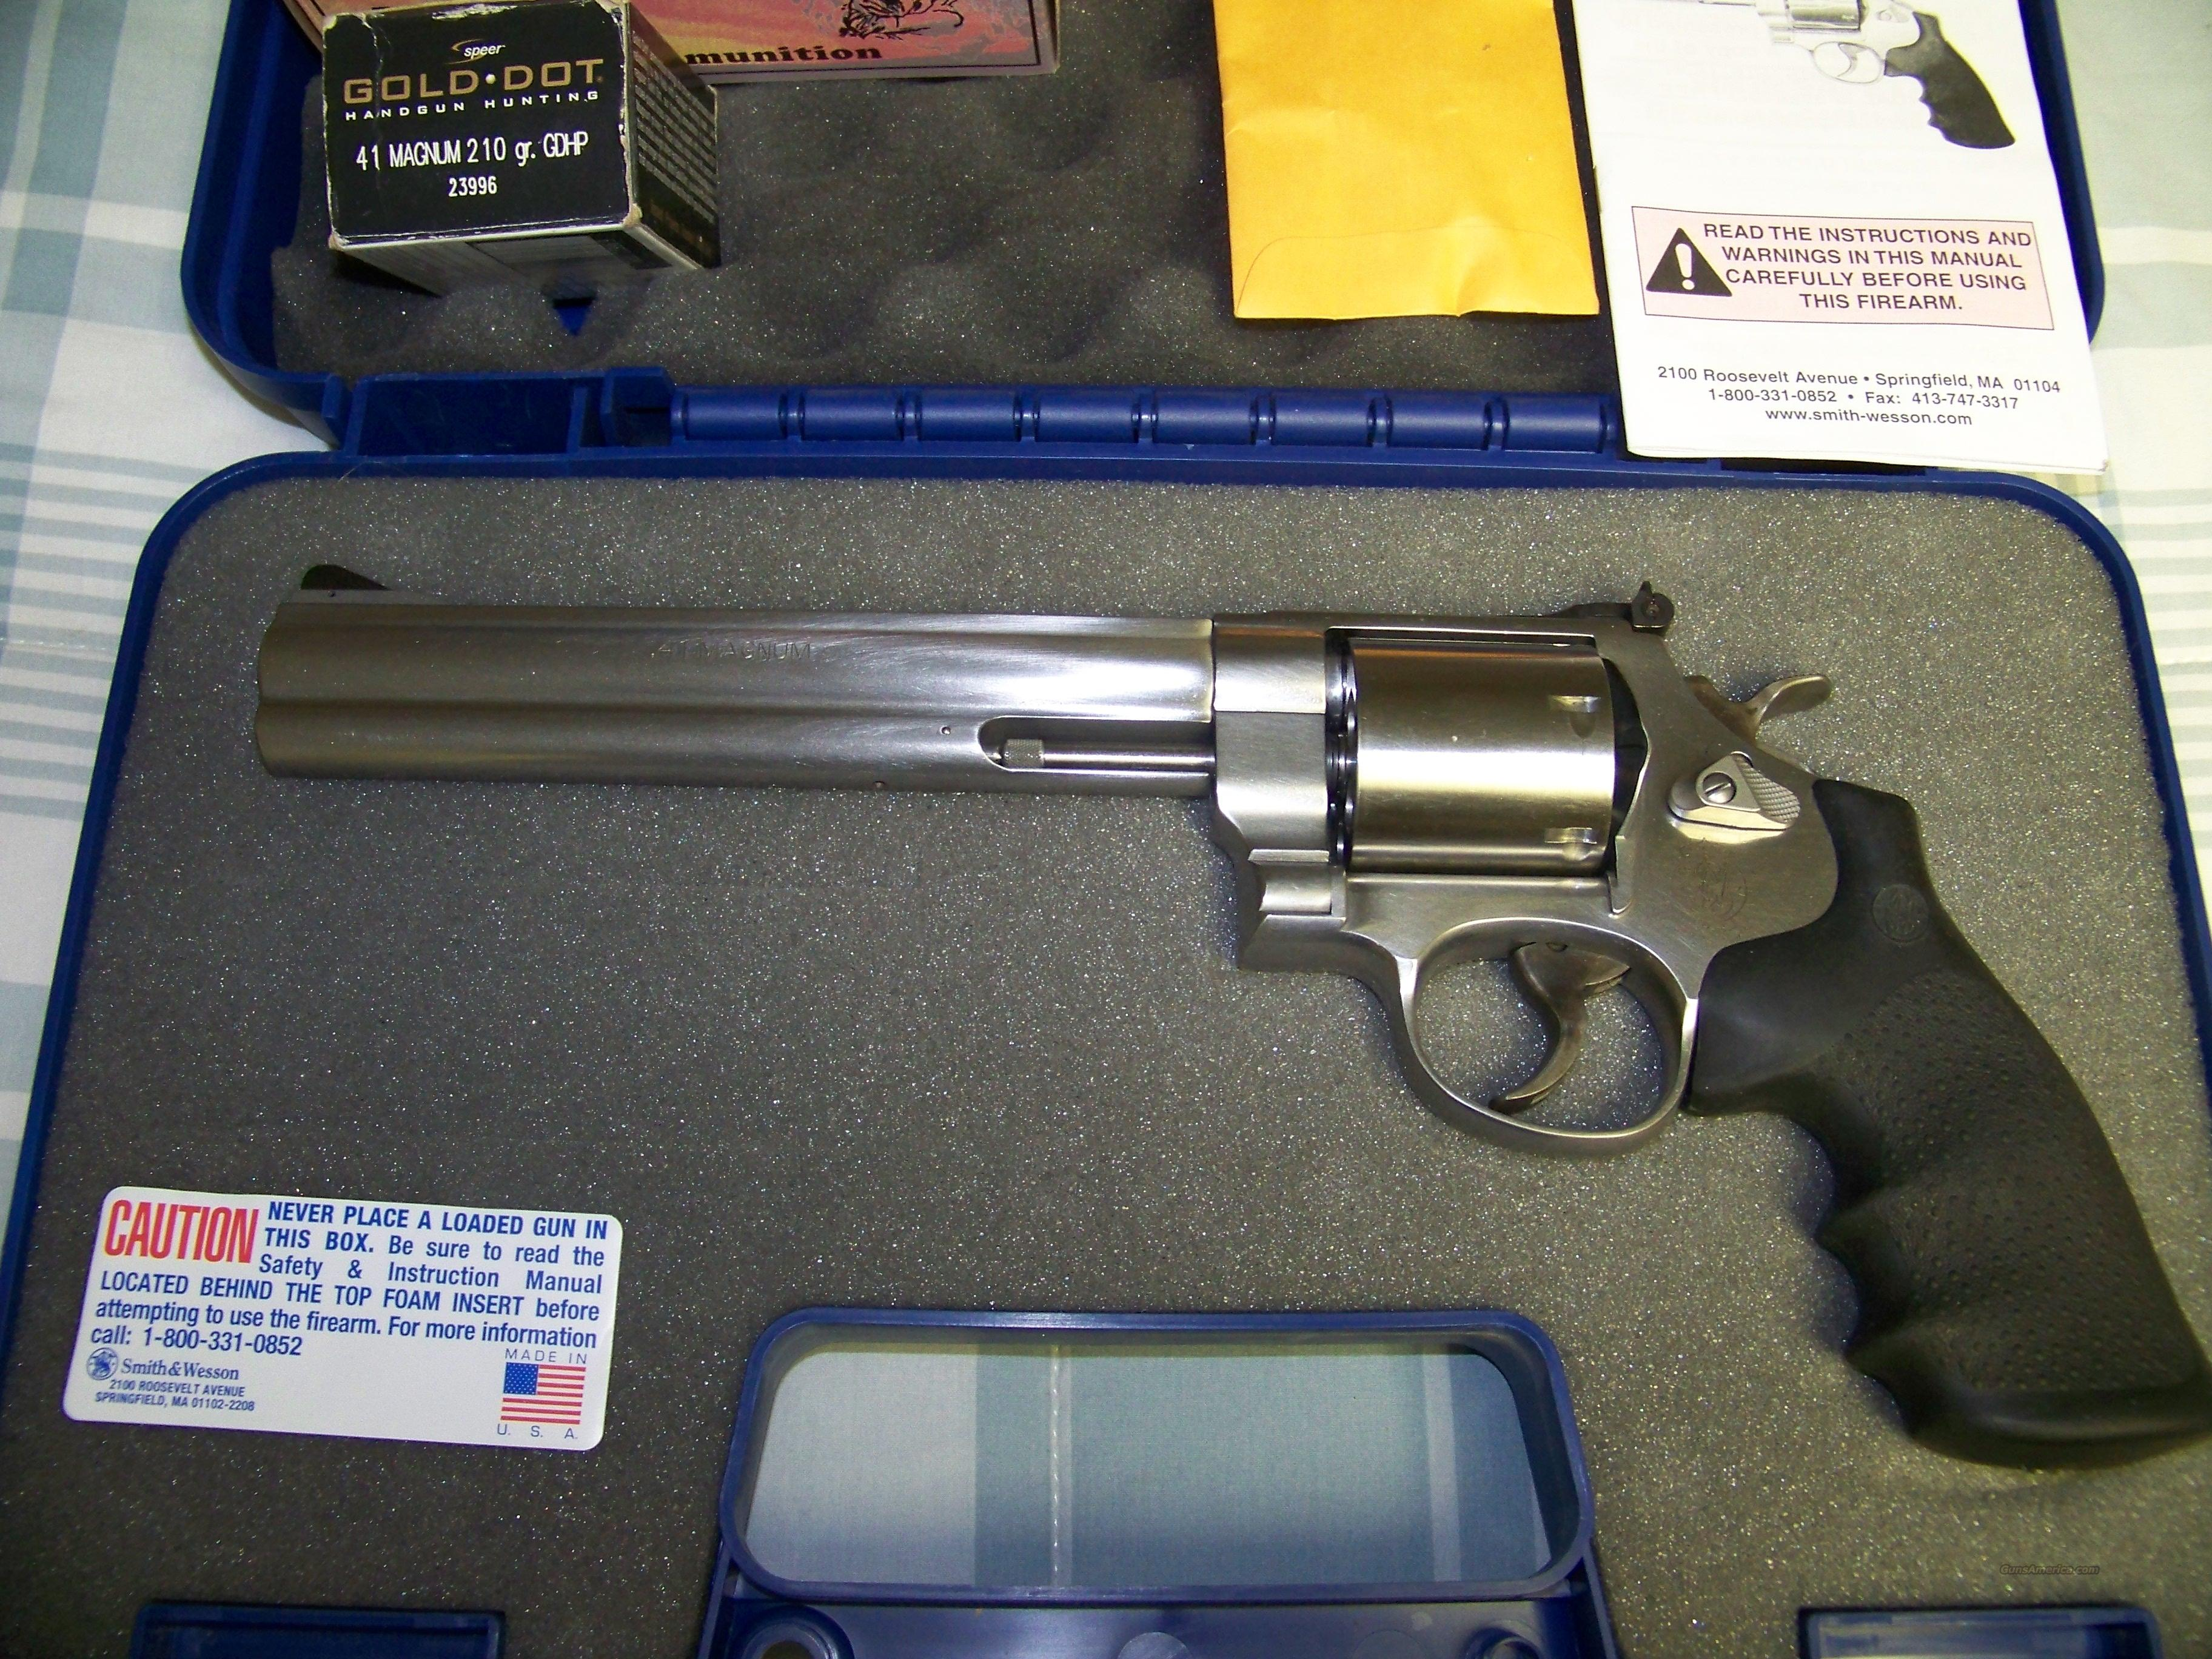 SMITH AND WESSON 657-5  Guns > Pistols > Smith & Wesson Revolvers > Full Frame Revolver